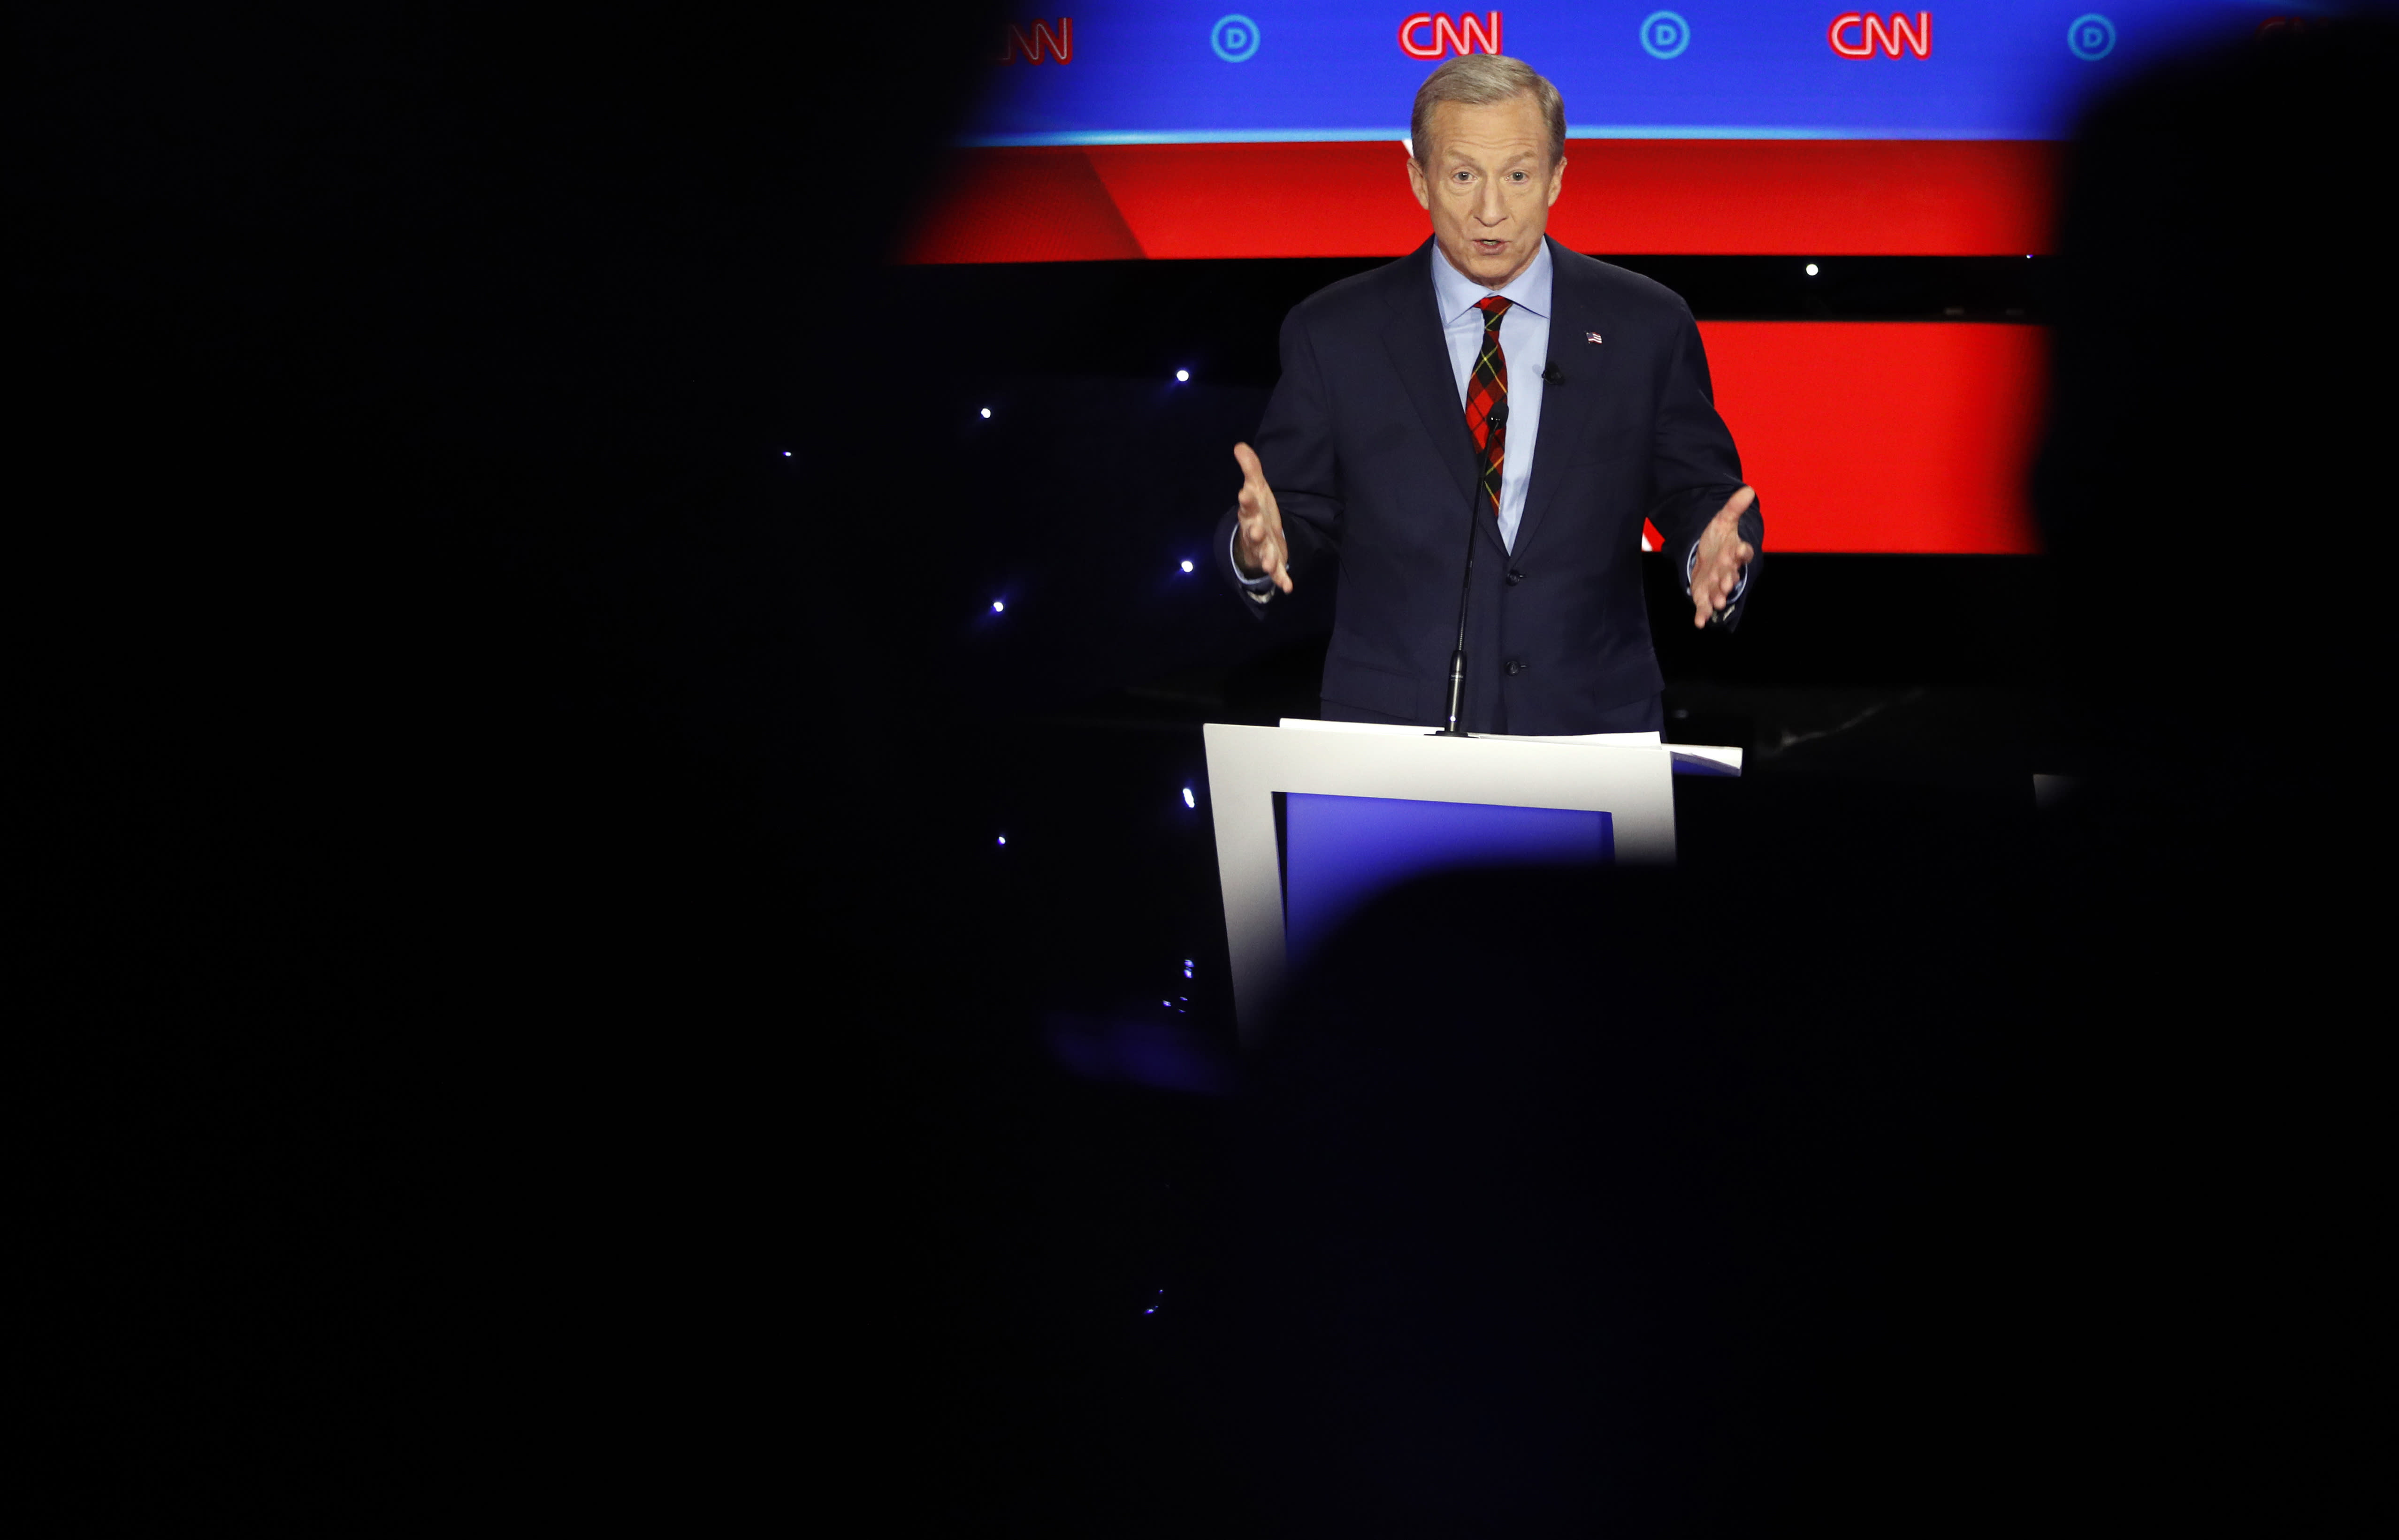 """FILE - In this Tuesday, Jan. 14, 2020 file photo, Democratic presidential candidate businessman Tom Steyer speaks during a Democratic presidential primary debate hosted by CNN and the Des Moines Register in Des Moines, Iowa. On Friday, Jan. 17, 2020, The Associated Press reported on a manipulated video circulating online incorrectly portraying Steyer criticizing Democrats during the Iowa presidential debate saying they would """"destroy the economy in 15 minutes if they get in control."""" The footage was edited to make it appear Steyer made a derogatory comment about Democrats and the economy. (AP Photo/Patrick Semansky)"""